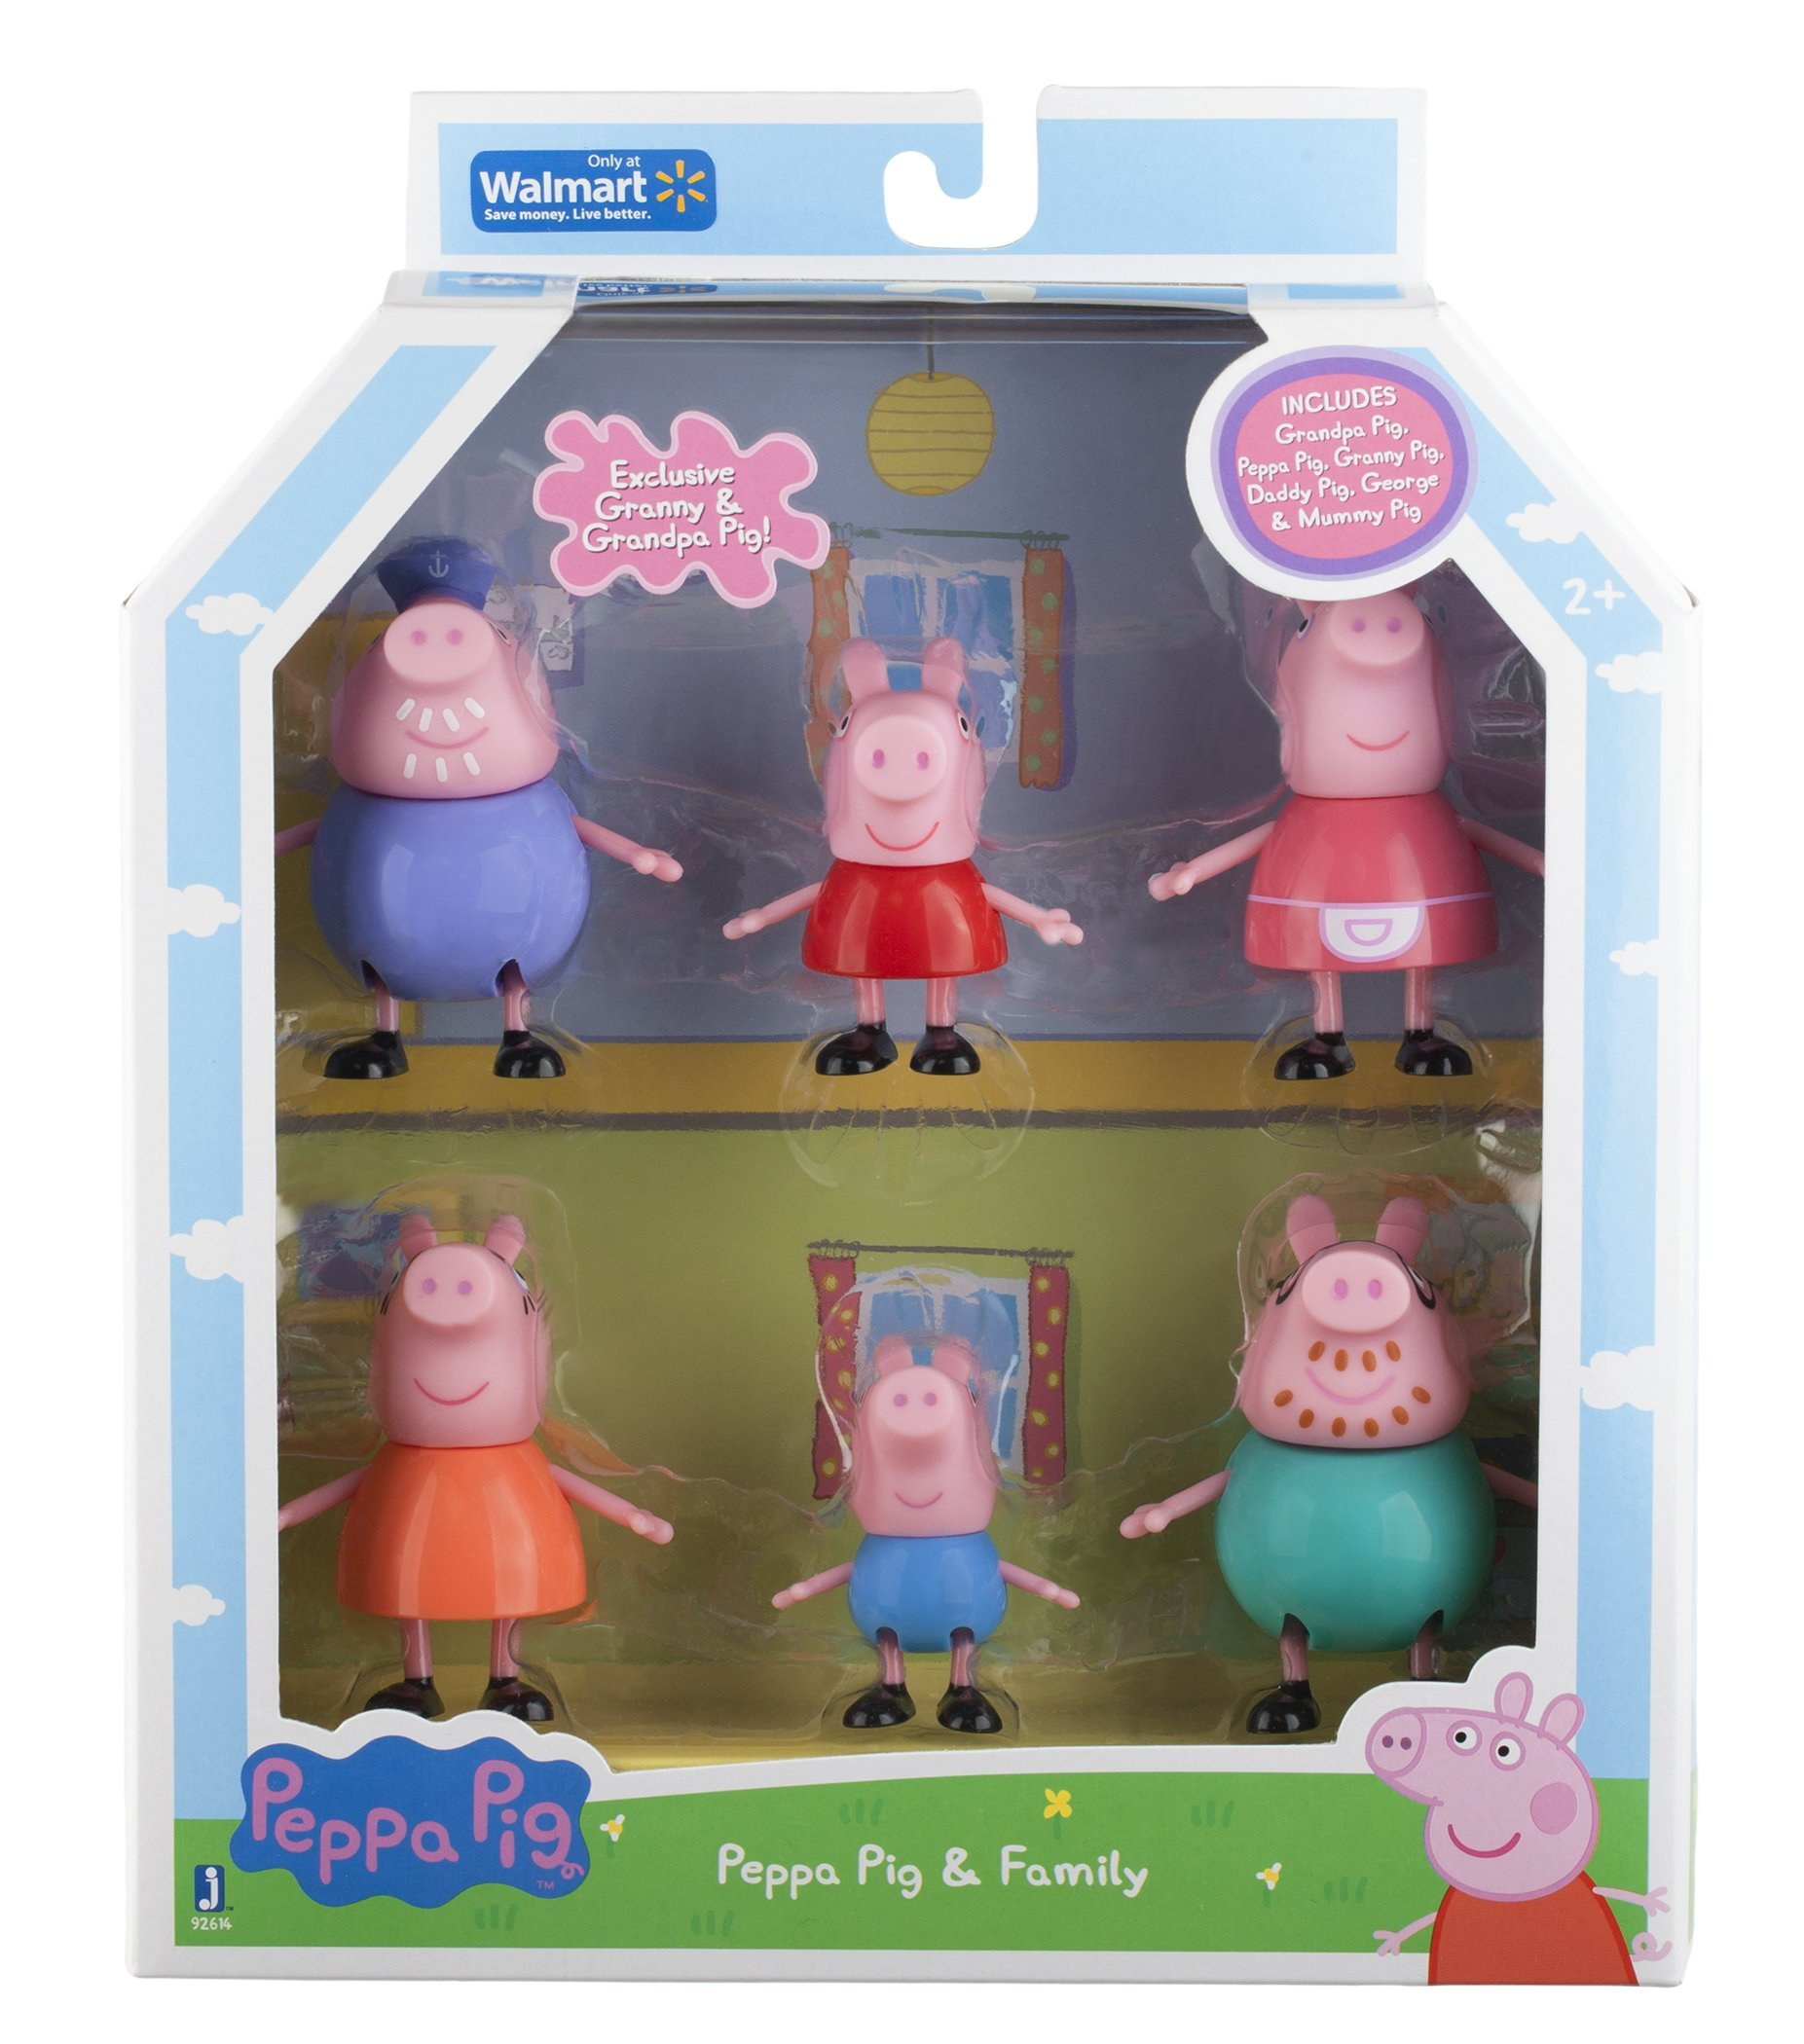 Peppa Pig And Family Figure Grandpa Granny Exclusive Set Of 6 8